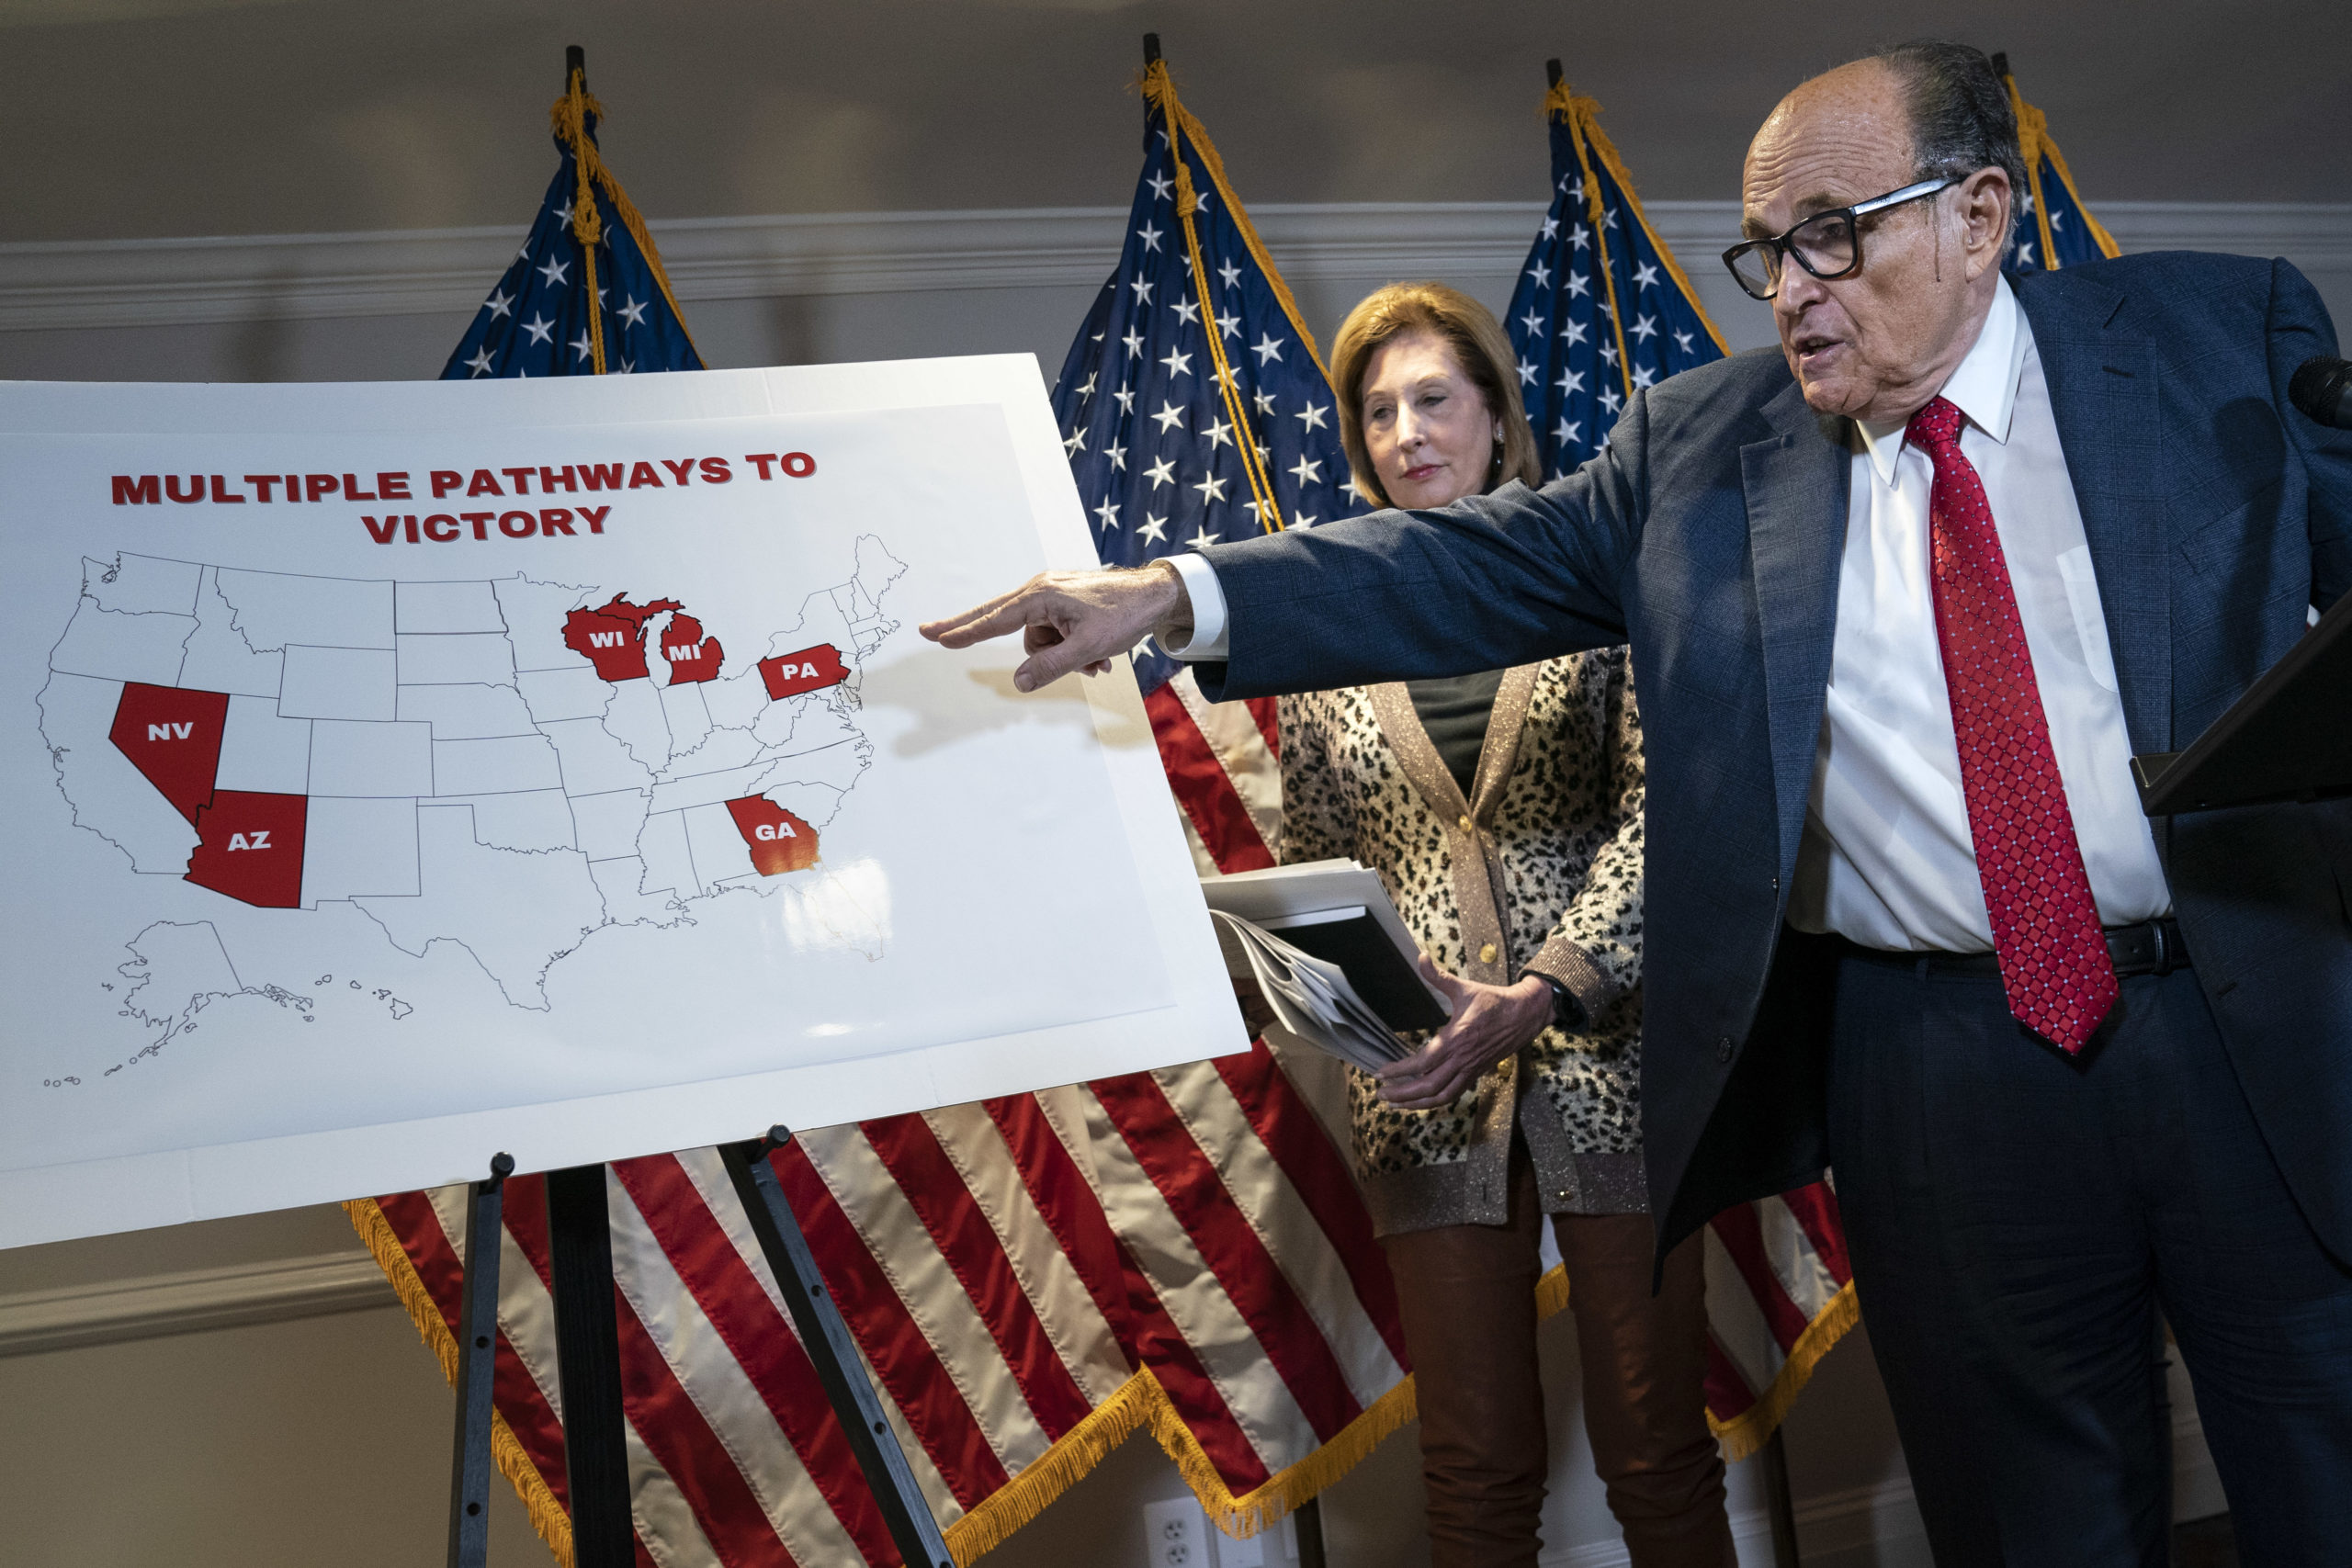 Rudy Giuliani points to a map as he speaks to the press about various lawsuits related to the 2020 election on Nov. 19. (Drew Angerer/Getty Images)